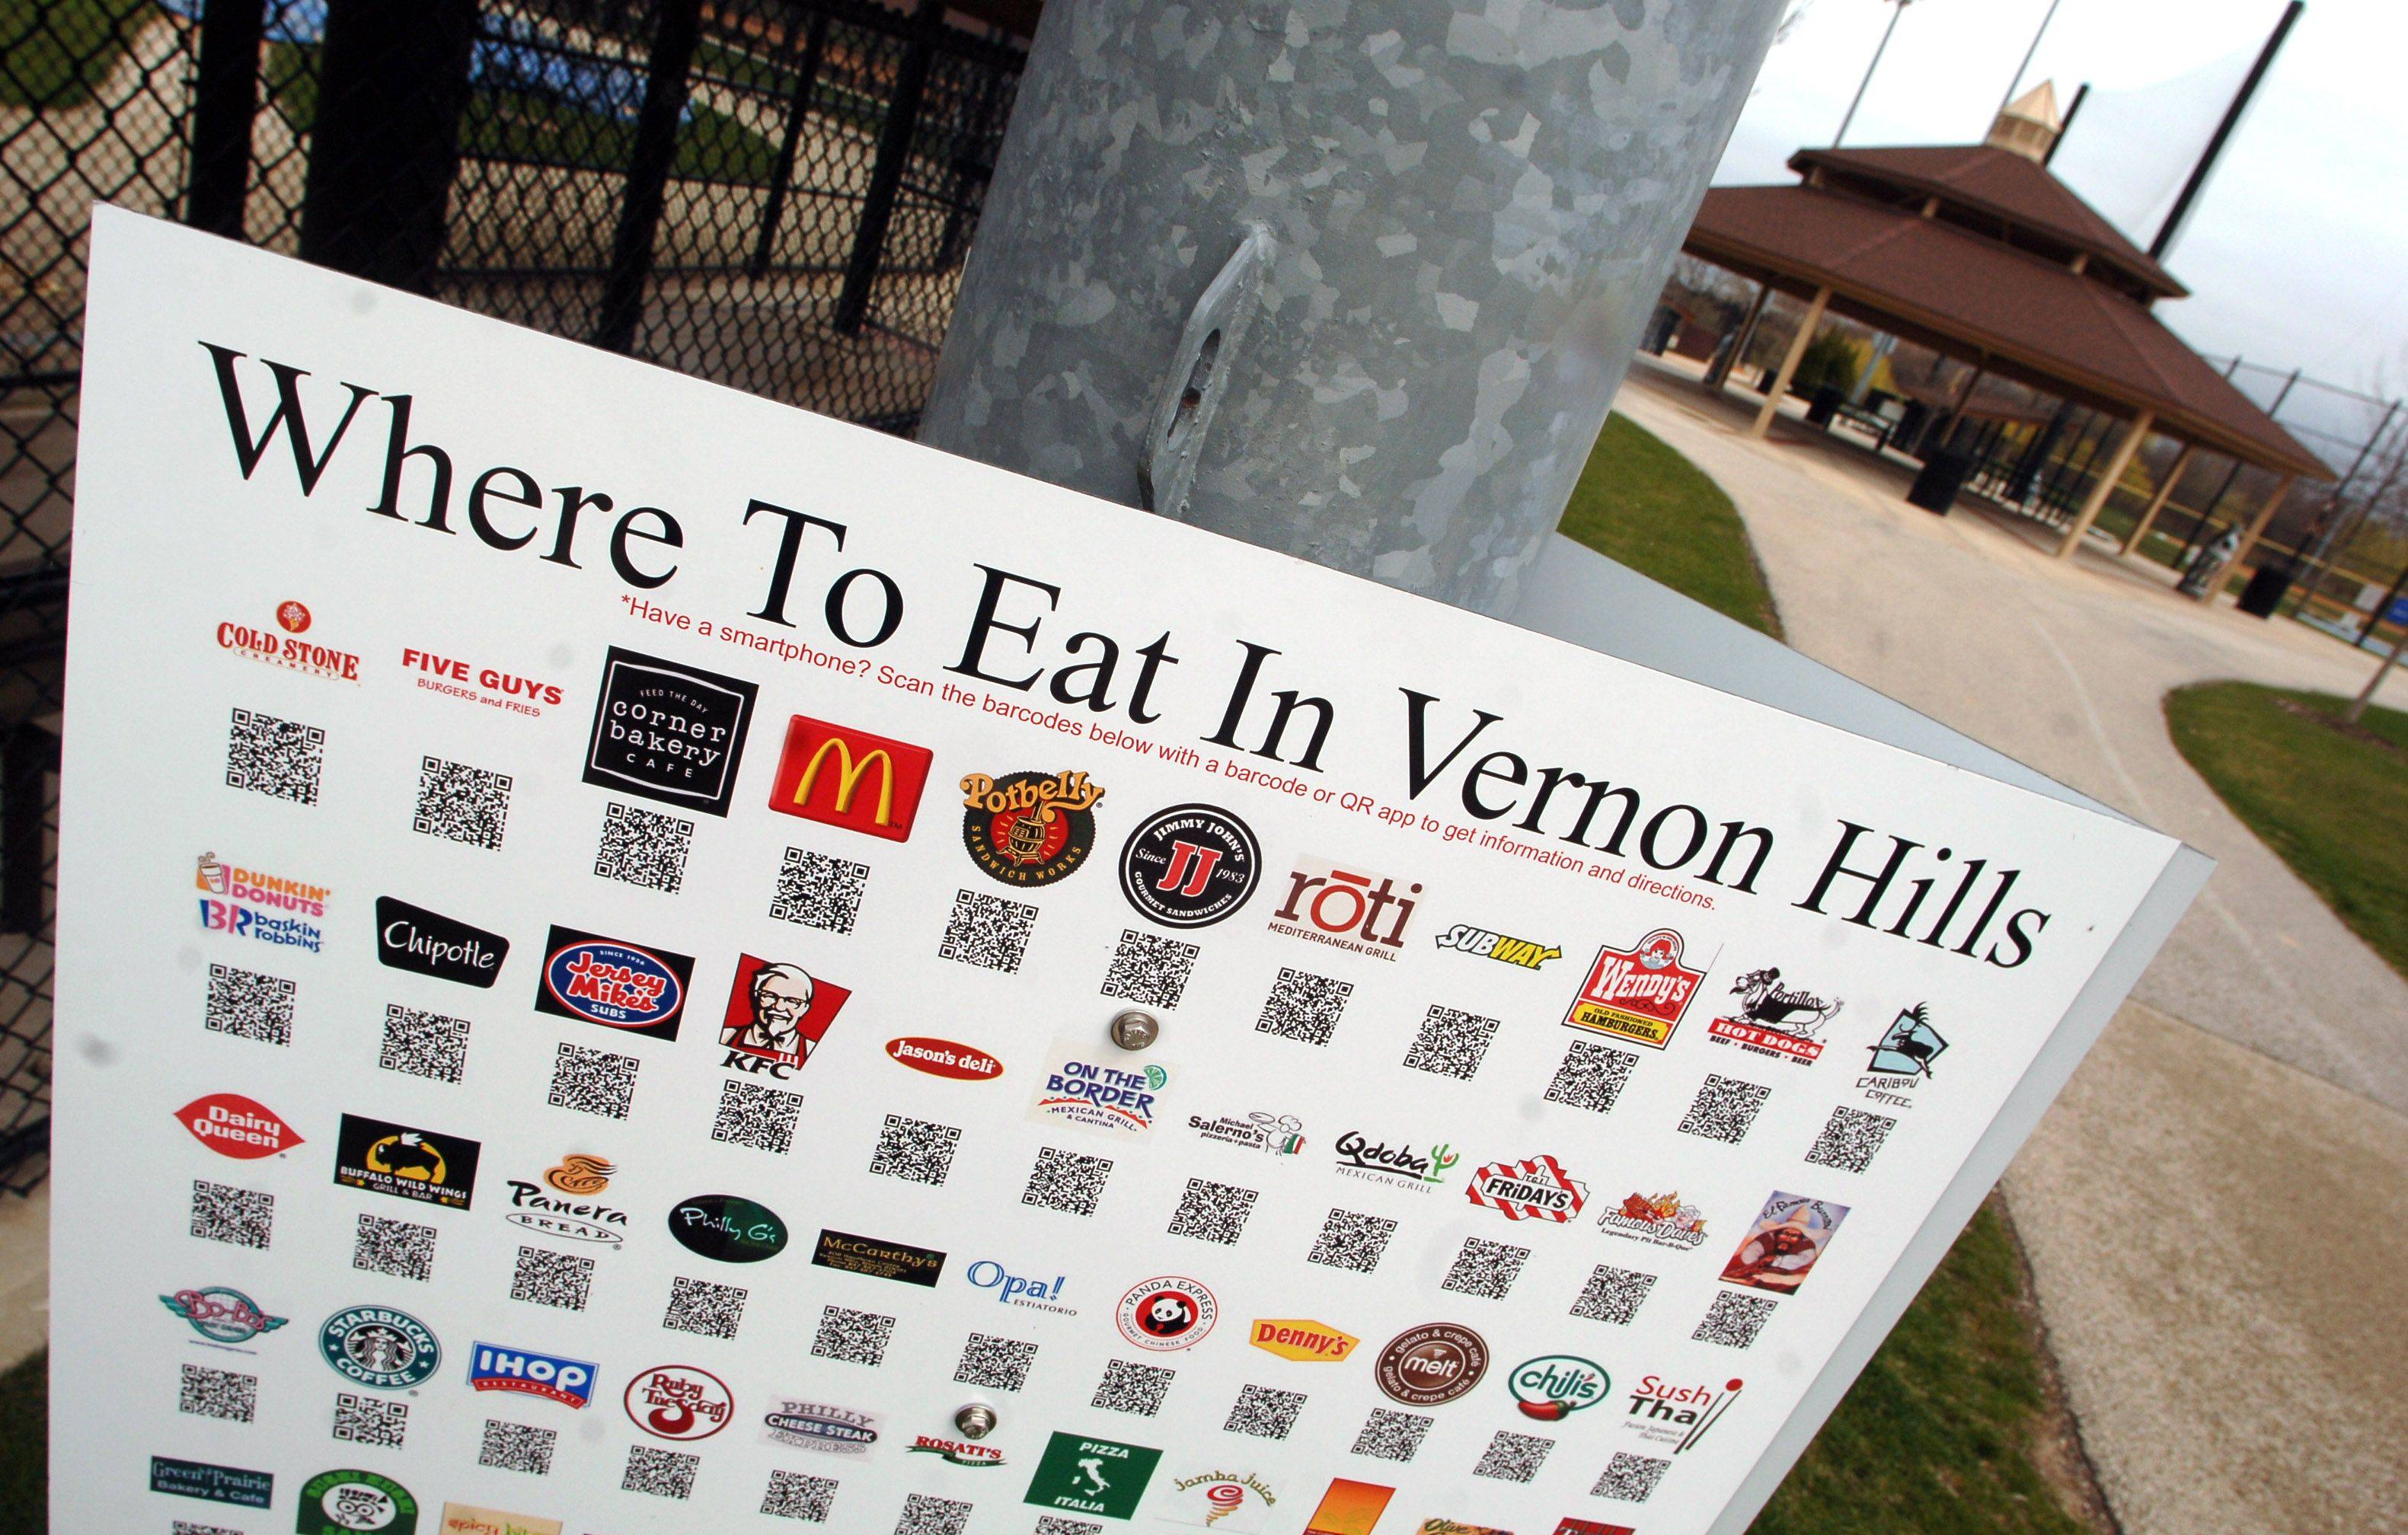 Smartphone users can scan a special code on signs posted at the Vernon Hills Athletic Complex to receive information about 55 local restaurants.